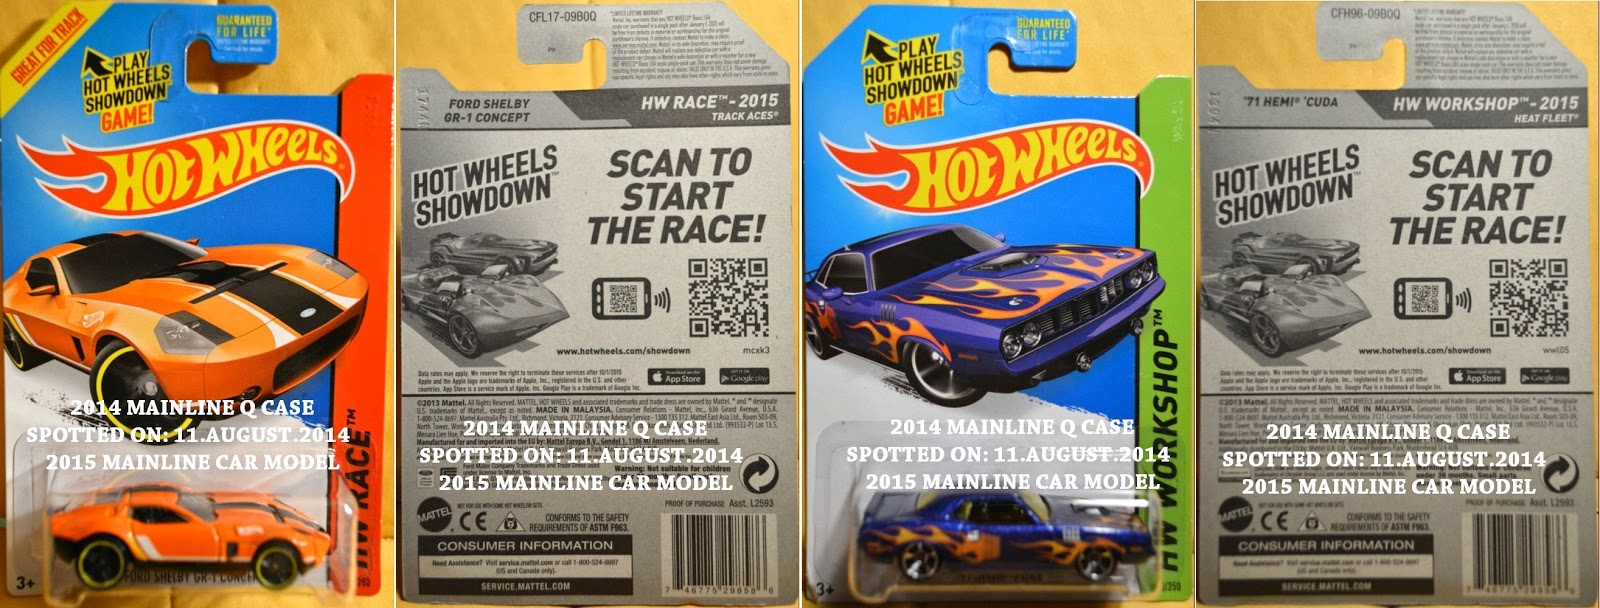 Monday, 11 August 2014. 2014 HOT WHEELS Q ...